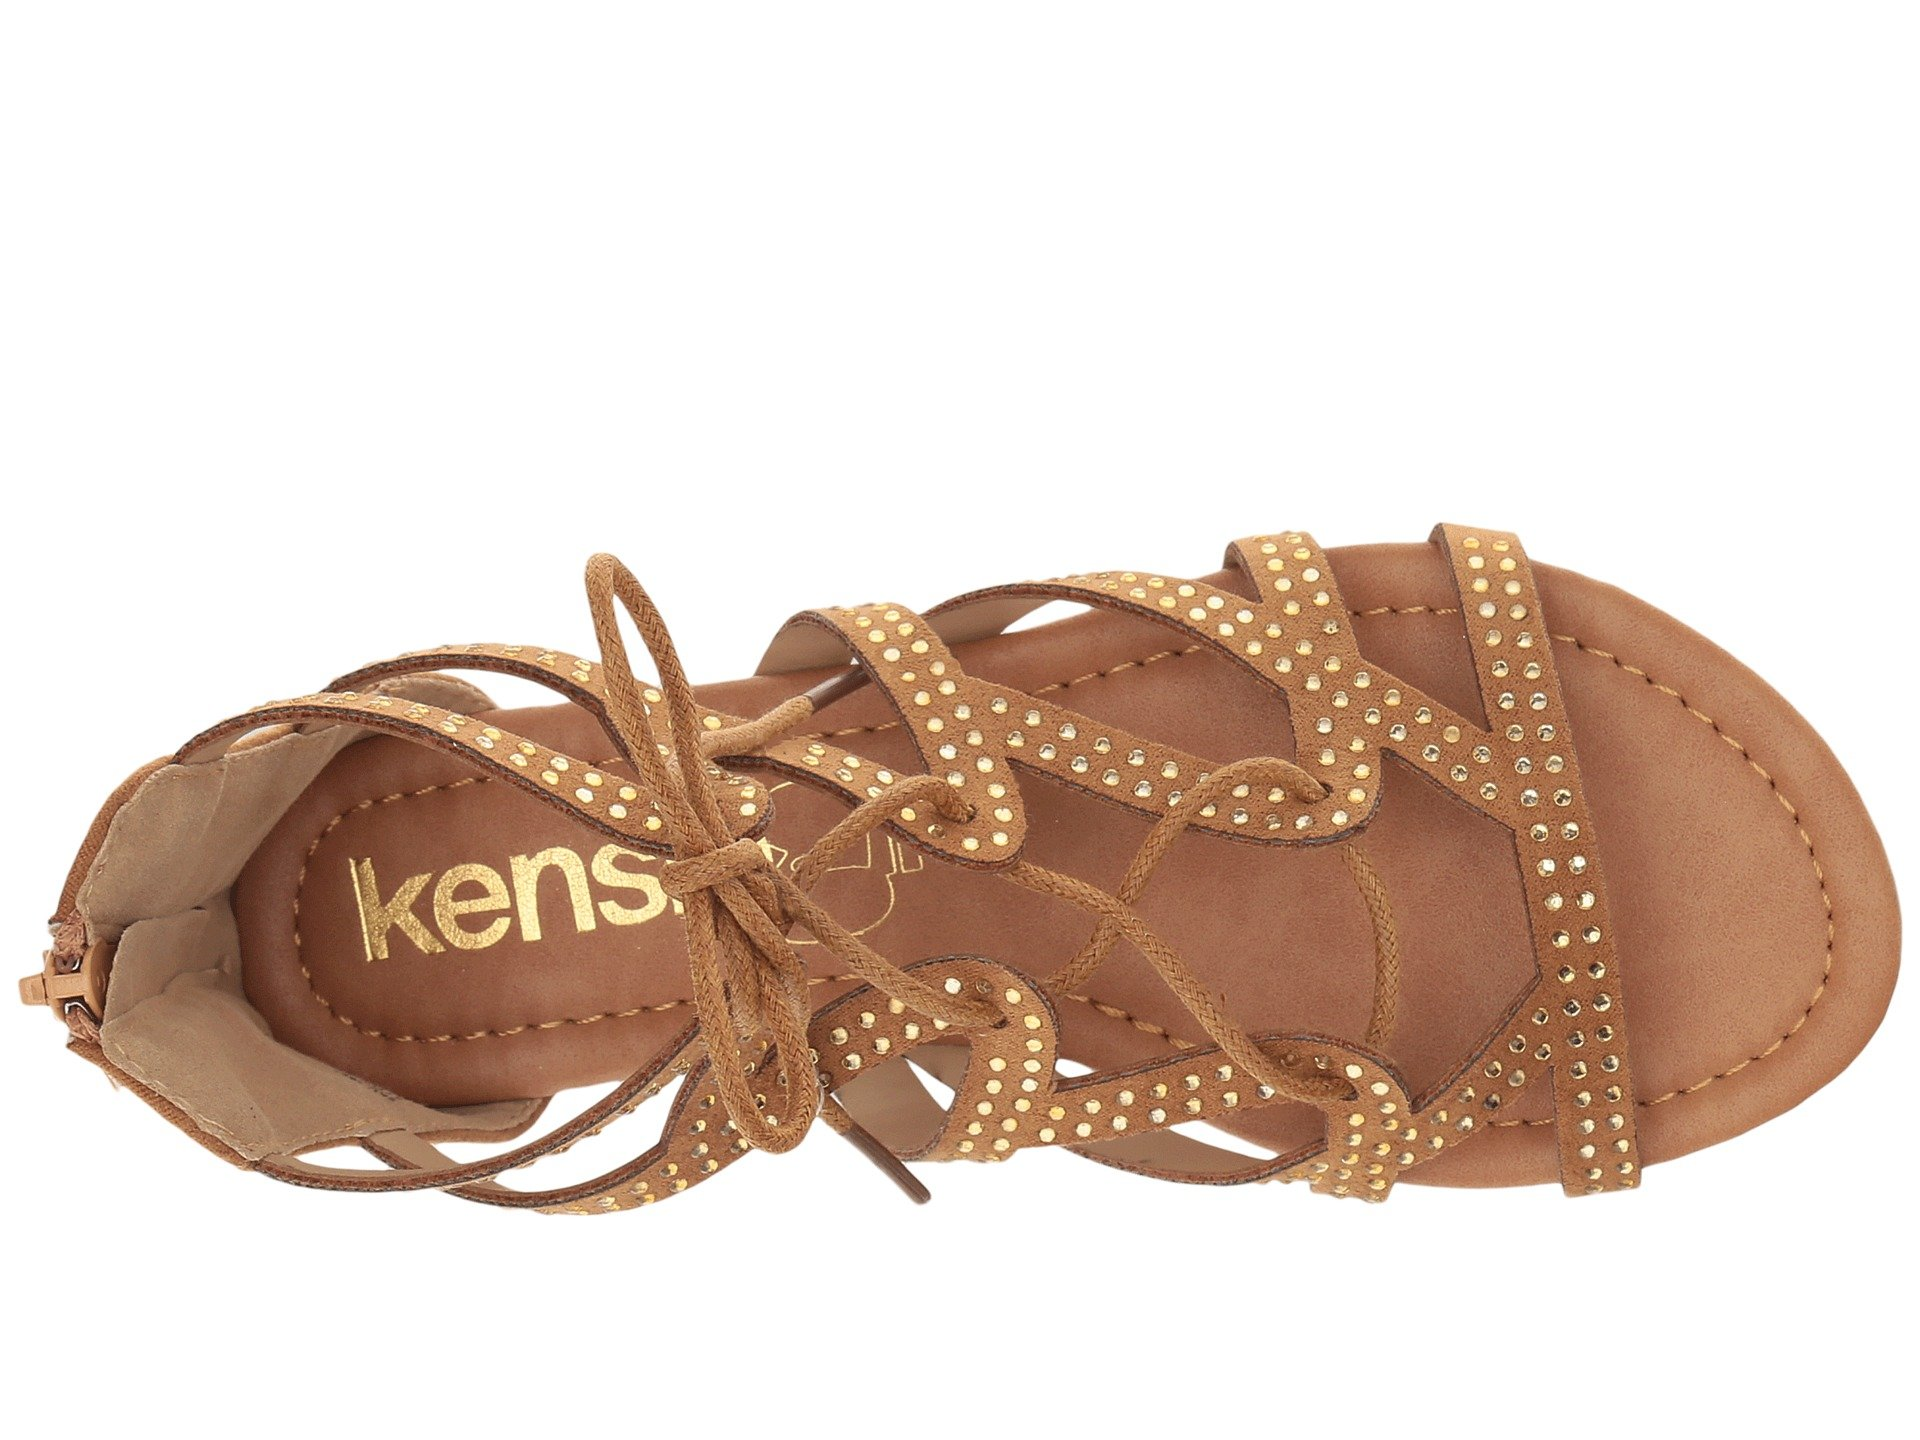 Kensie Girl Shoes Size Chart